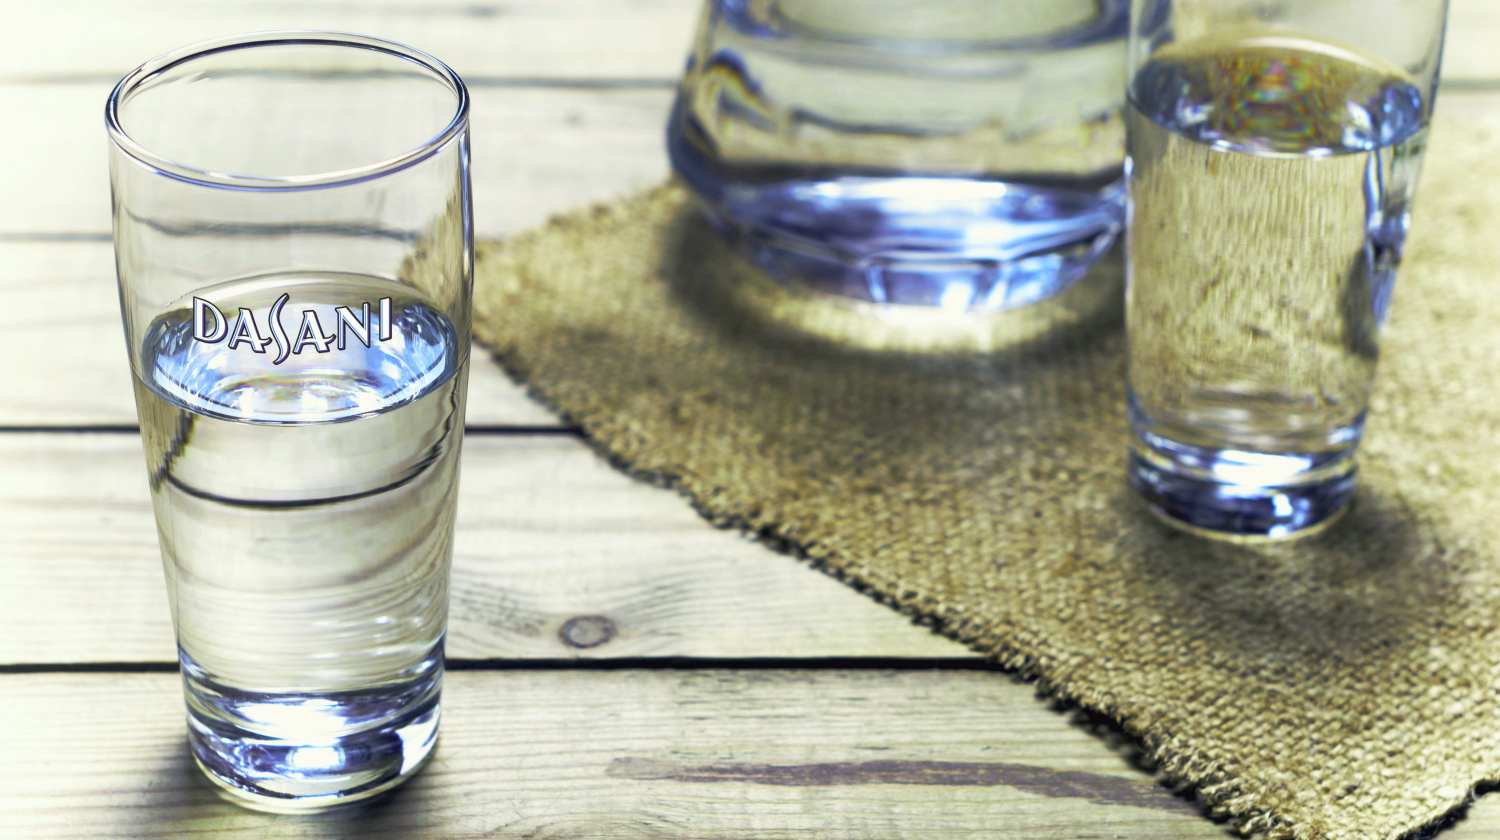 Dasani Water Vs Alkaline Water: What Should You Drink